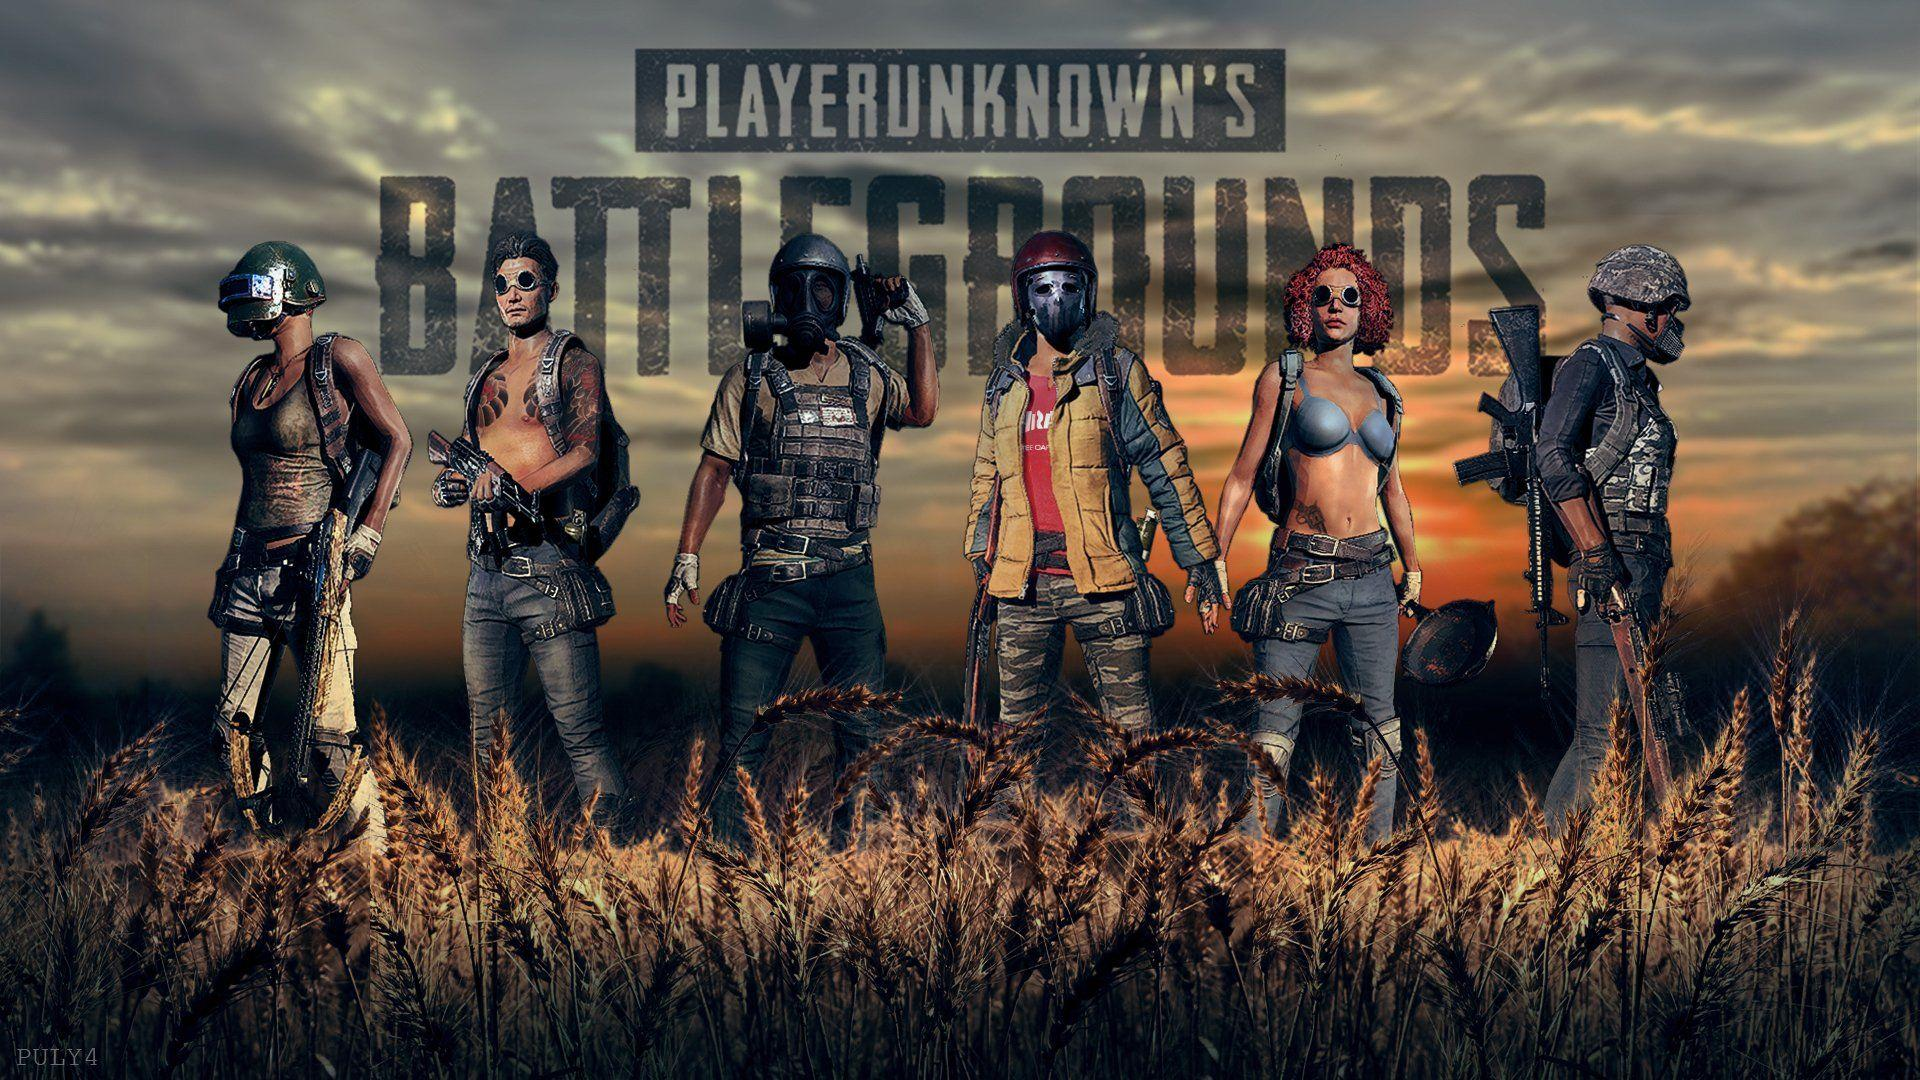 The Top 10 Best PUBG Wallpapers (January)